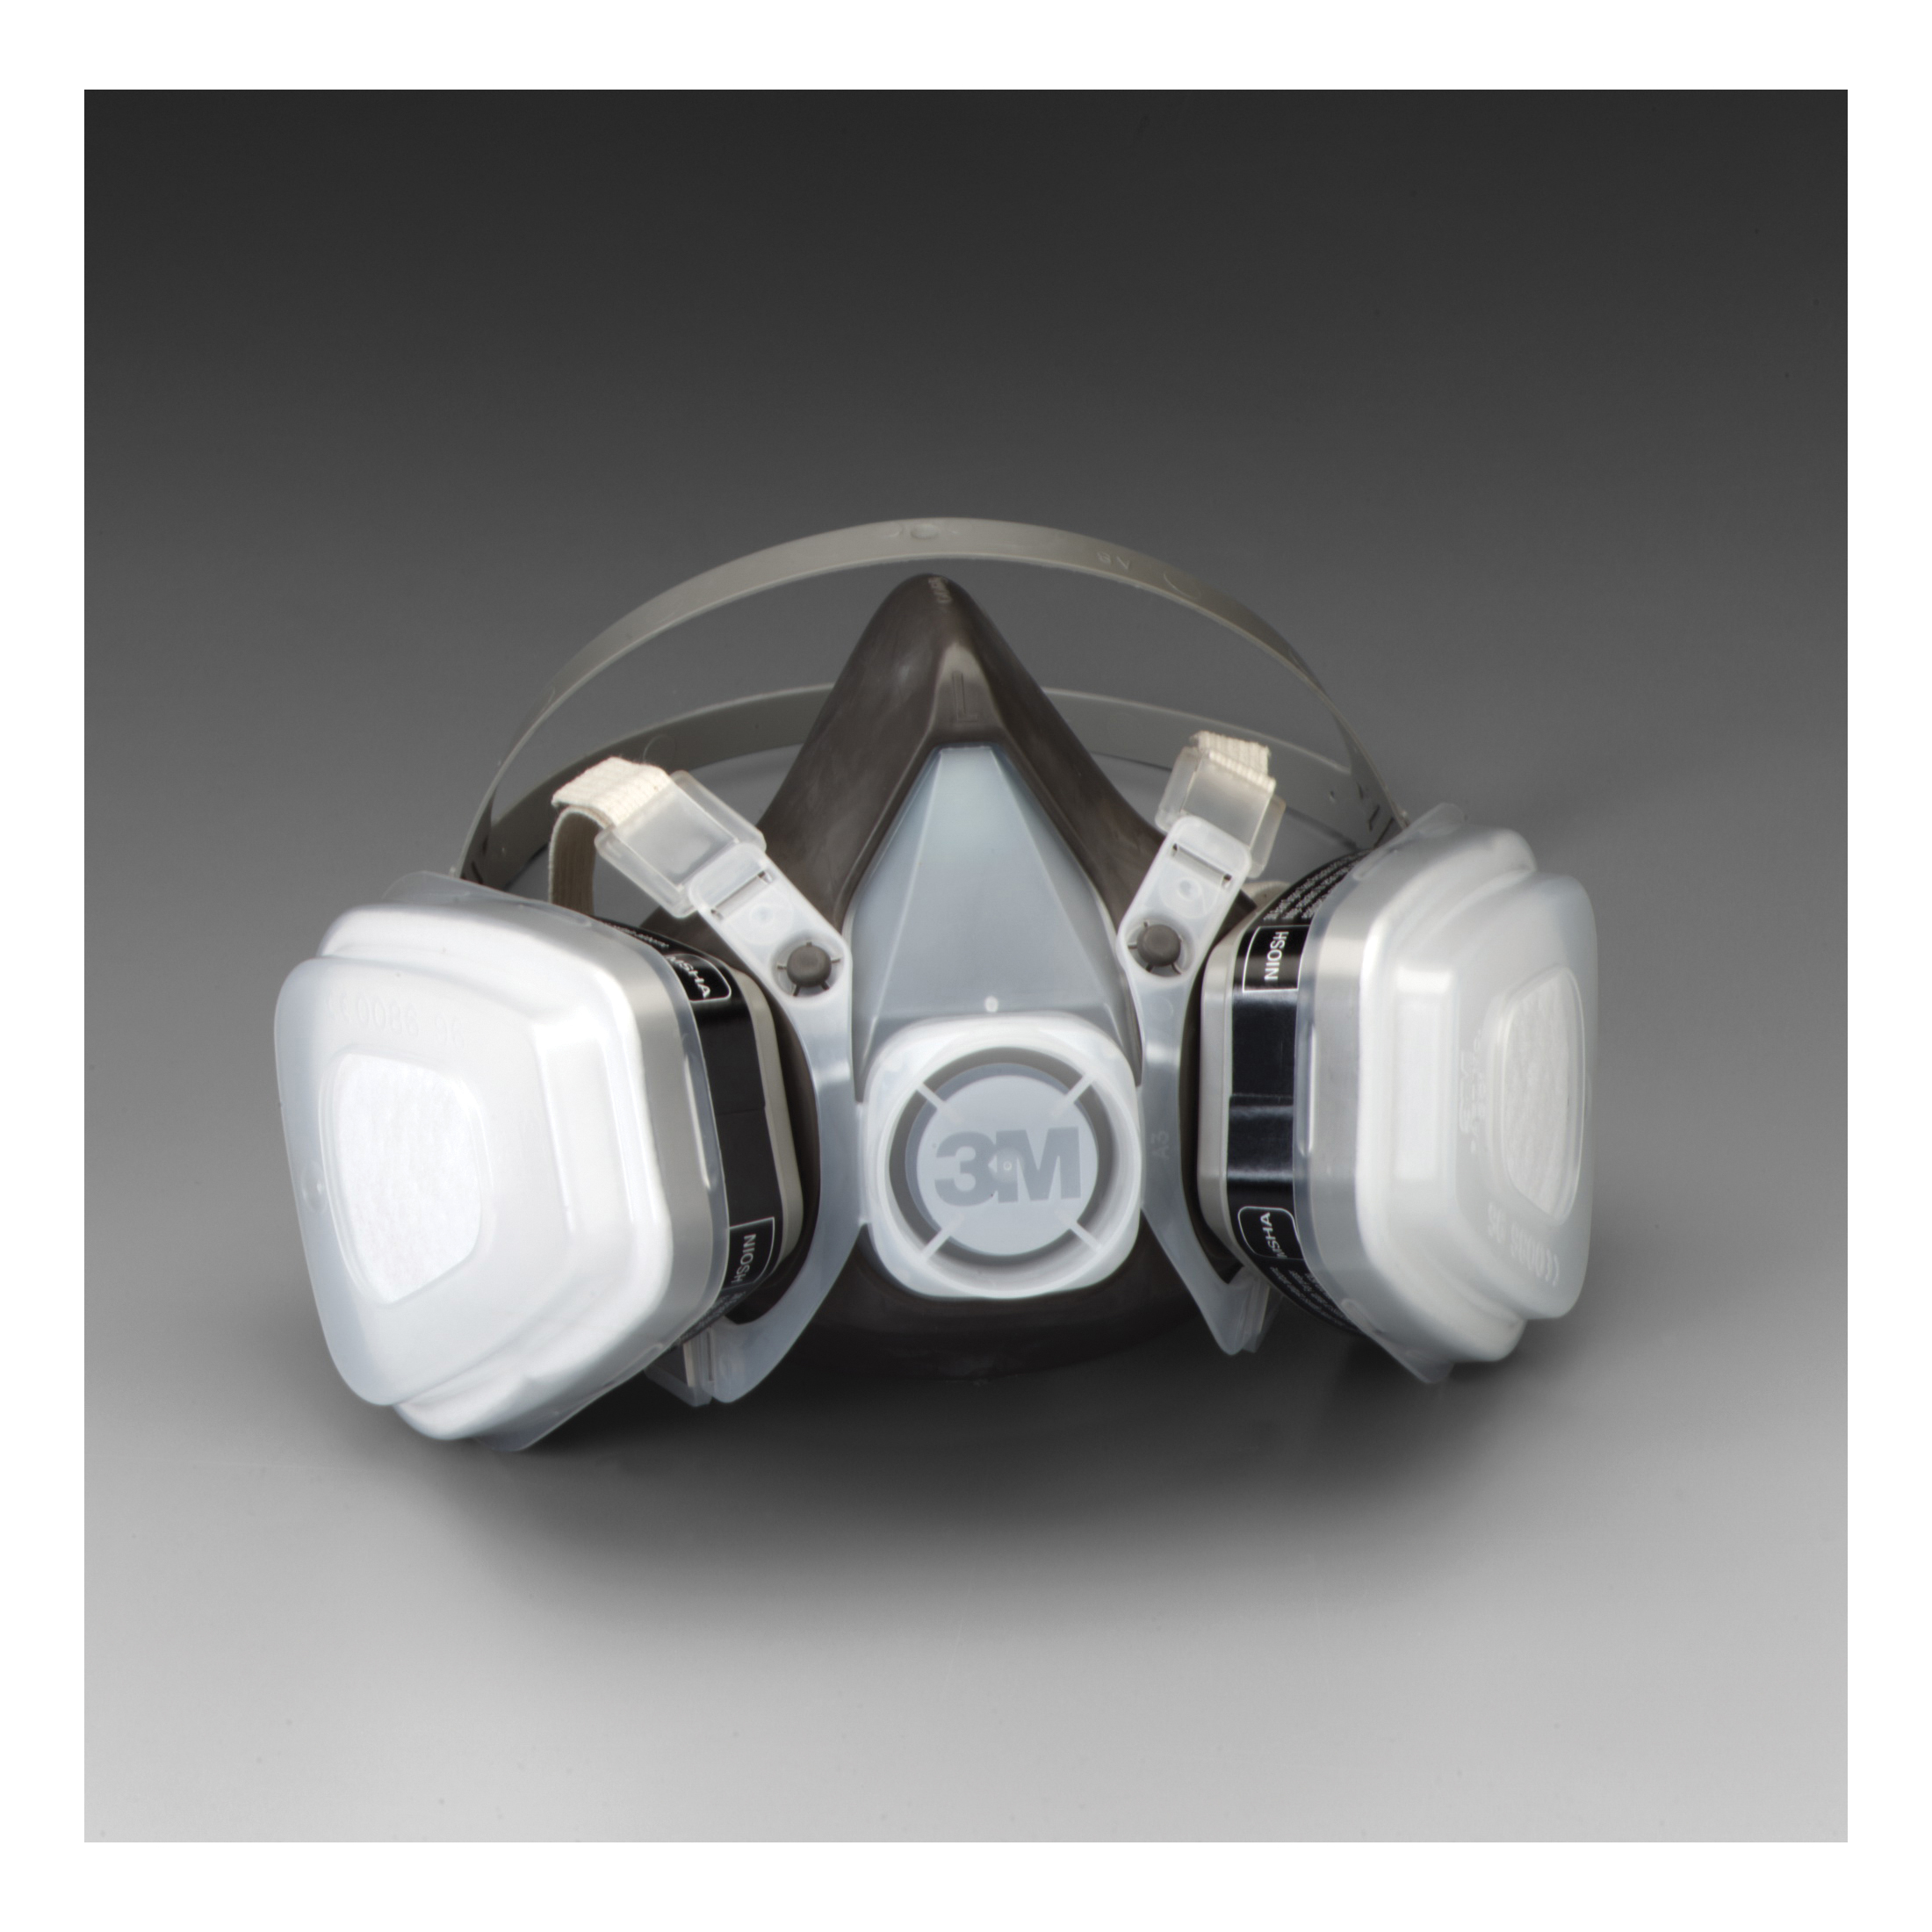 3M™ 051138-66070 5000 Disposable Half Facepiece Respirator Assembly, L, Resists: Acid Gas, Chlorine, Hydrogen Chloride, Hydrogen Fluoride, Hydrogen Sulfide, Organic Vapors and Sulfur Dioxide